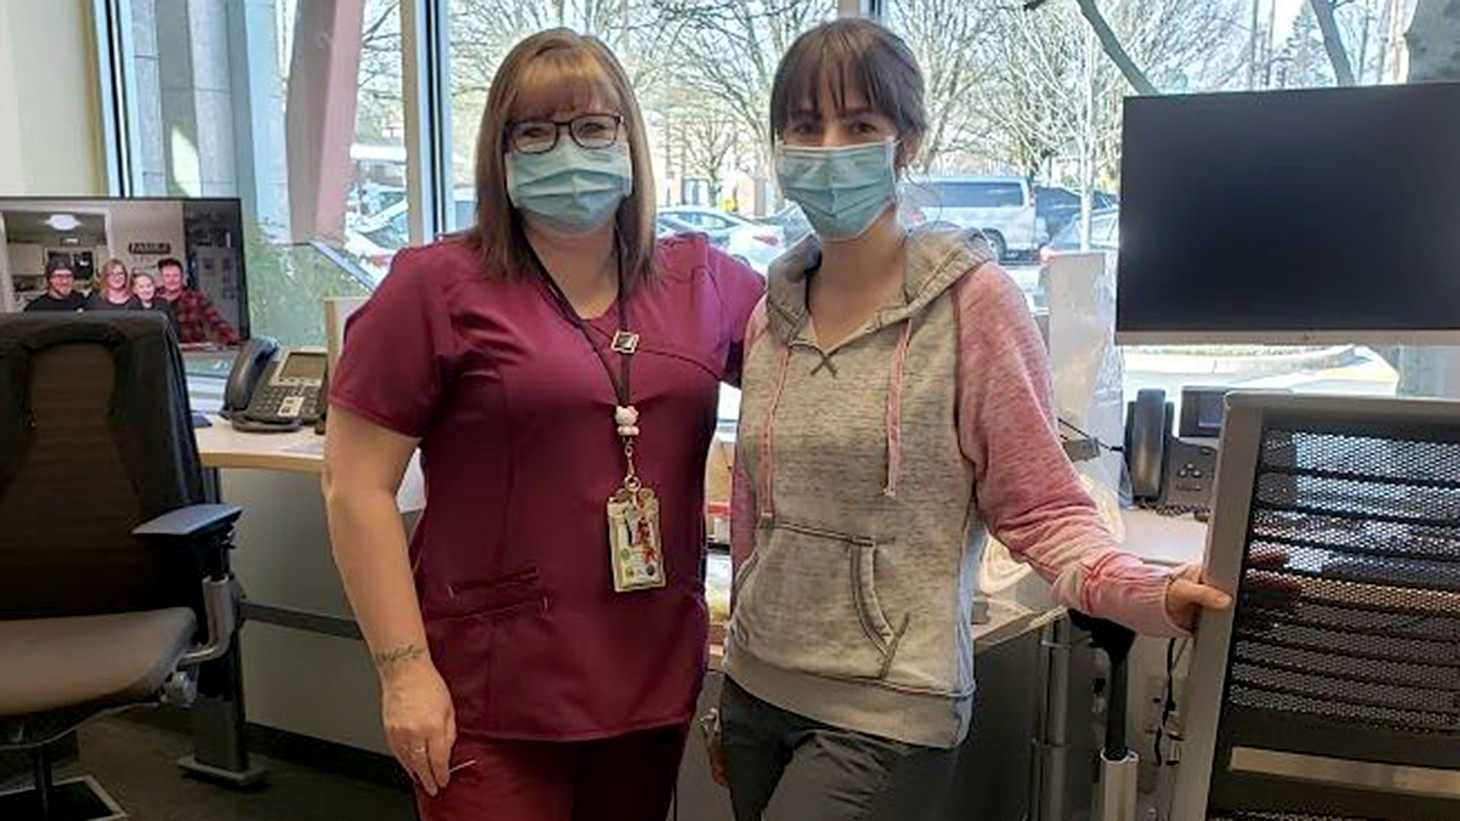 Two women, health care workers, posing together in an office